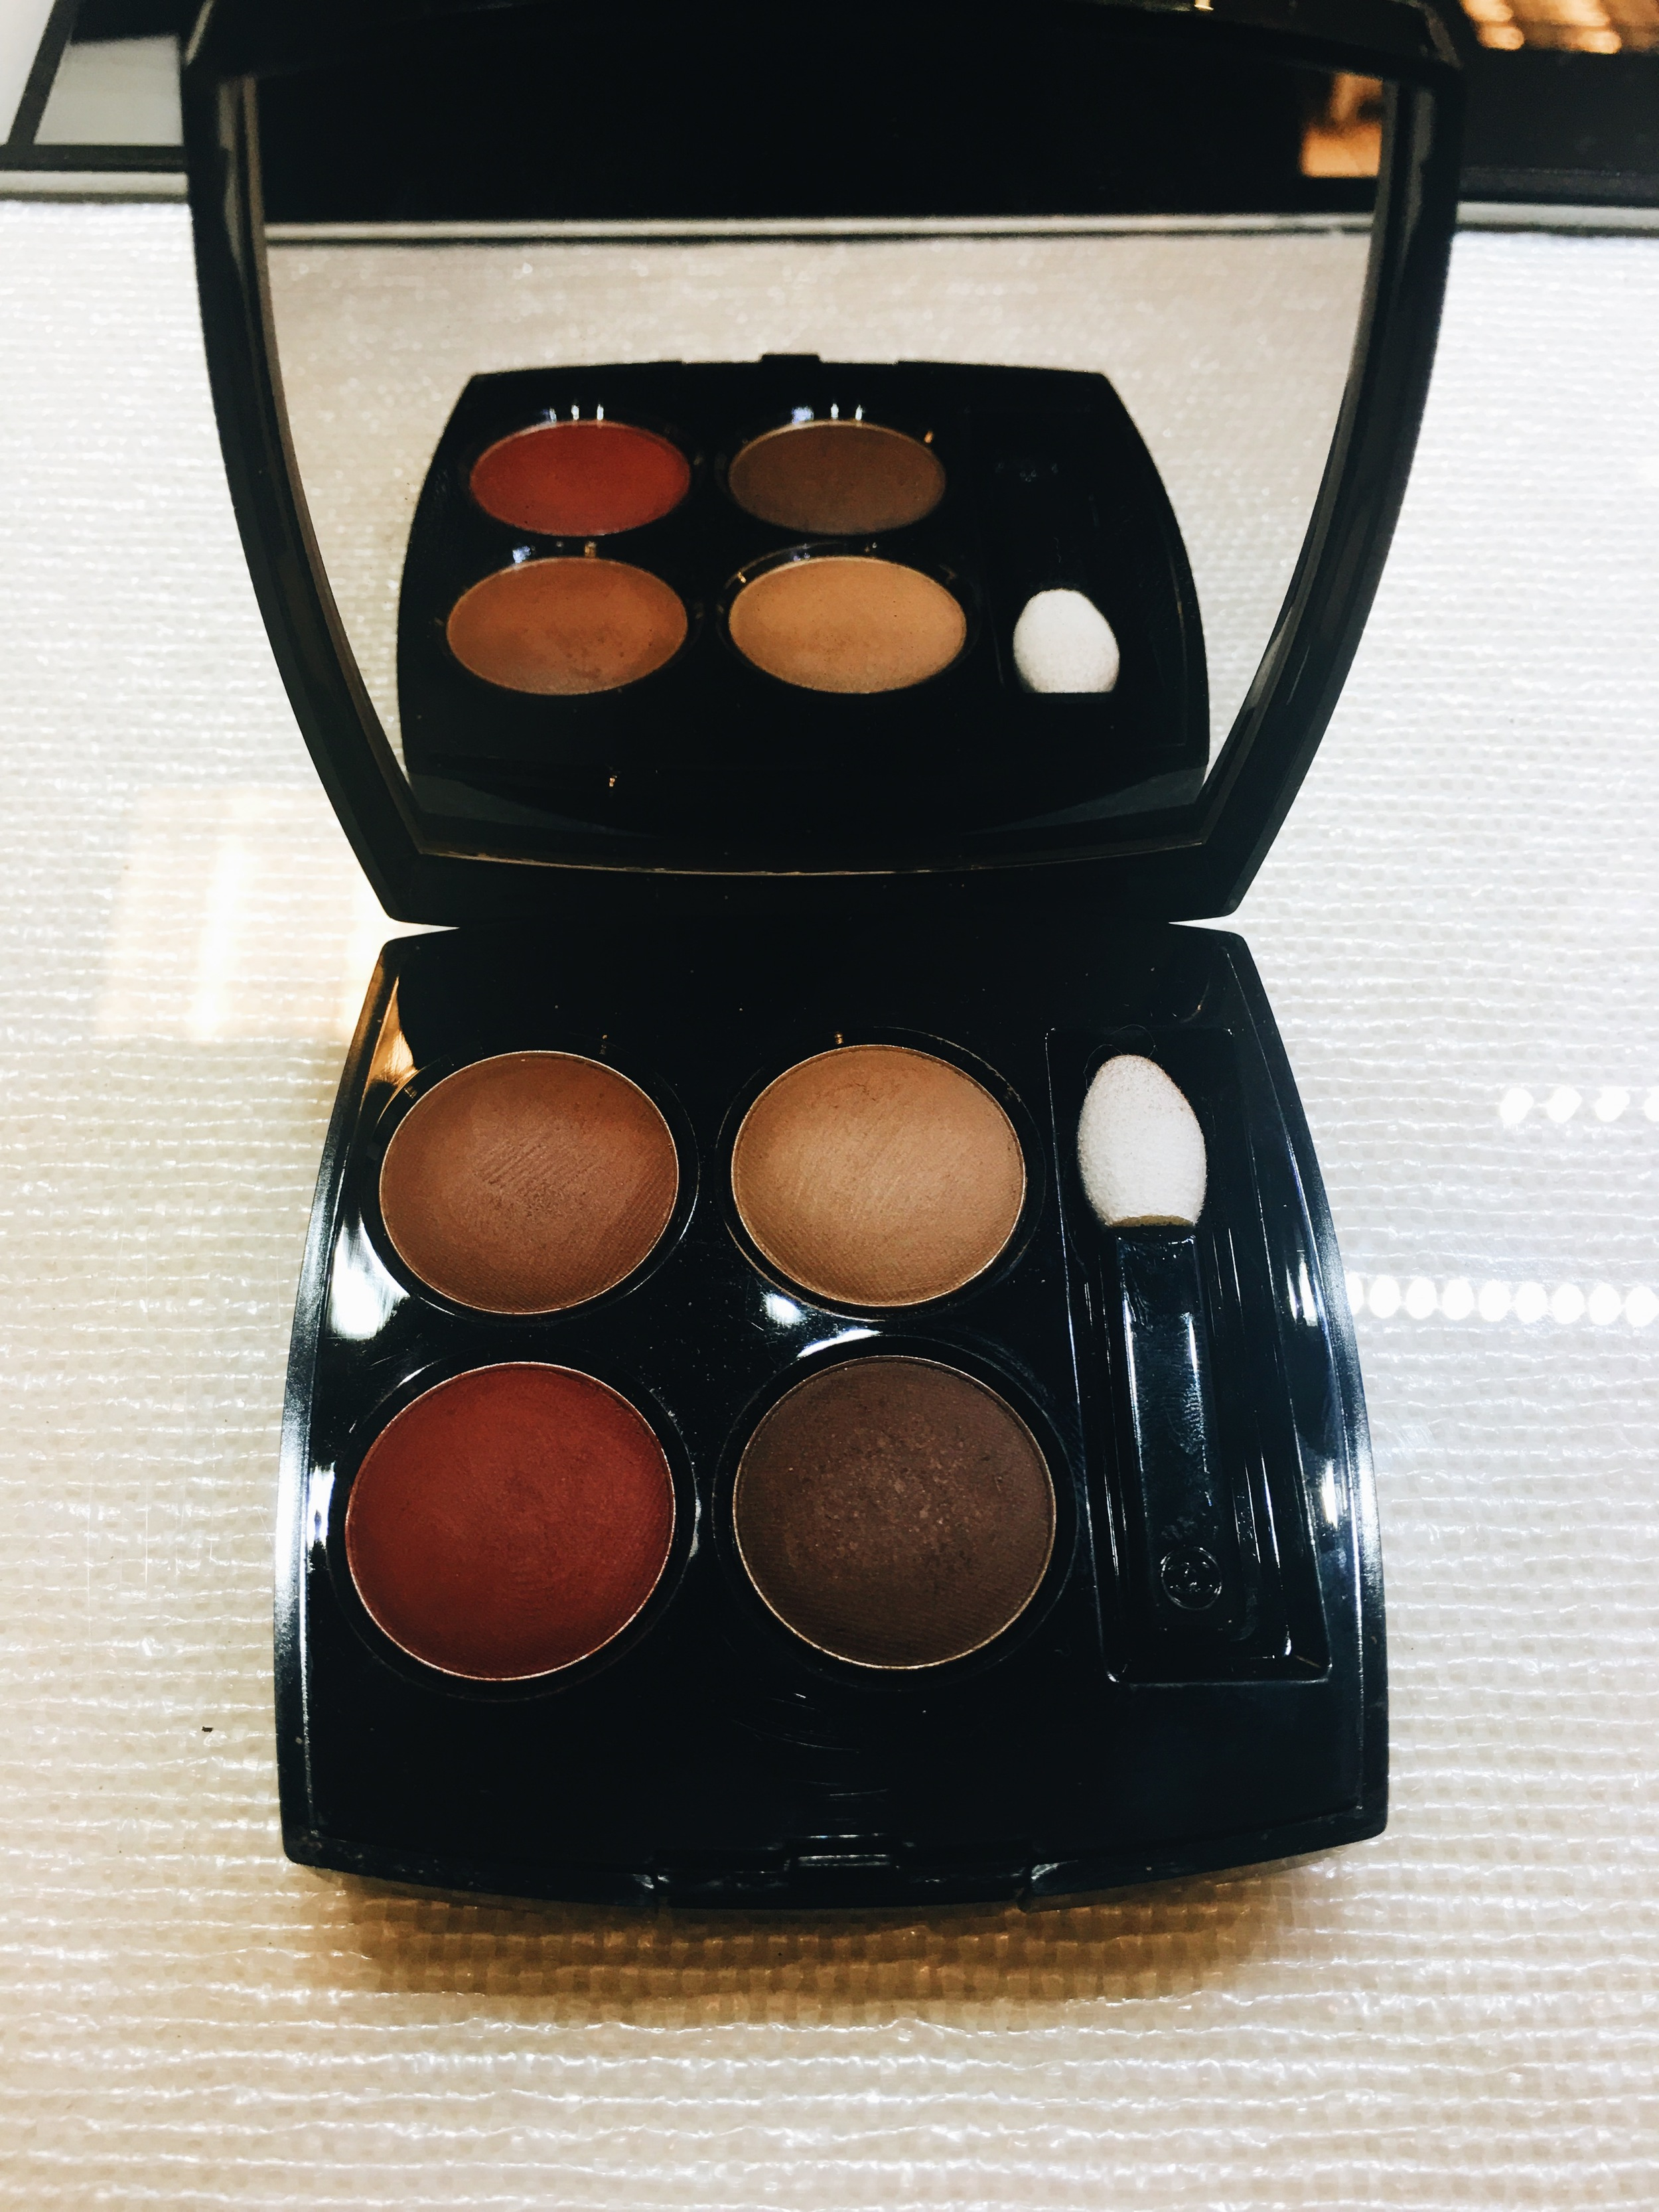 Les 4 Ombres Multi- Effect Quadra Eyeshadow //Name : Candeur Et Experience